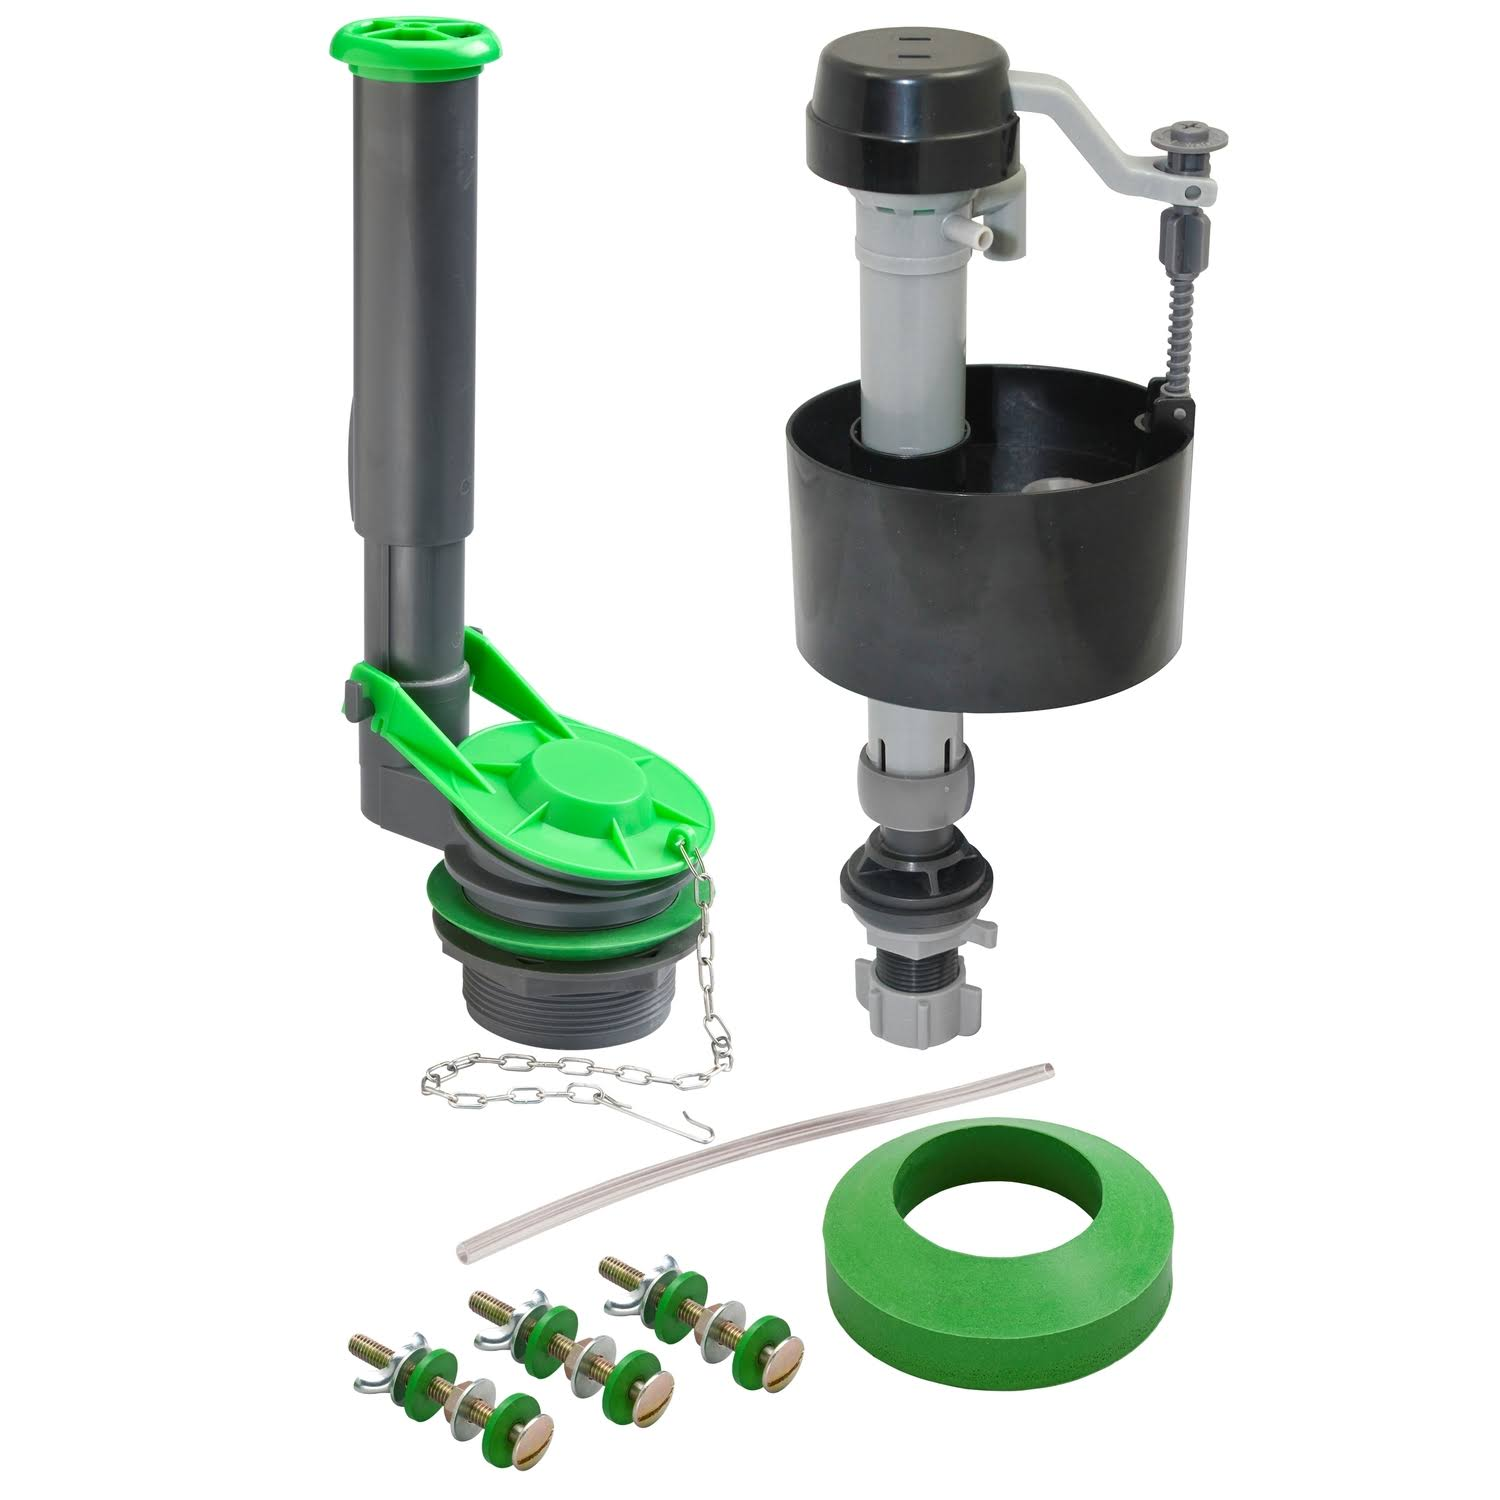 Plumb Pak K83016BX Toilet Tank Repair Kit - Grey and Green